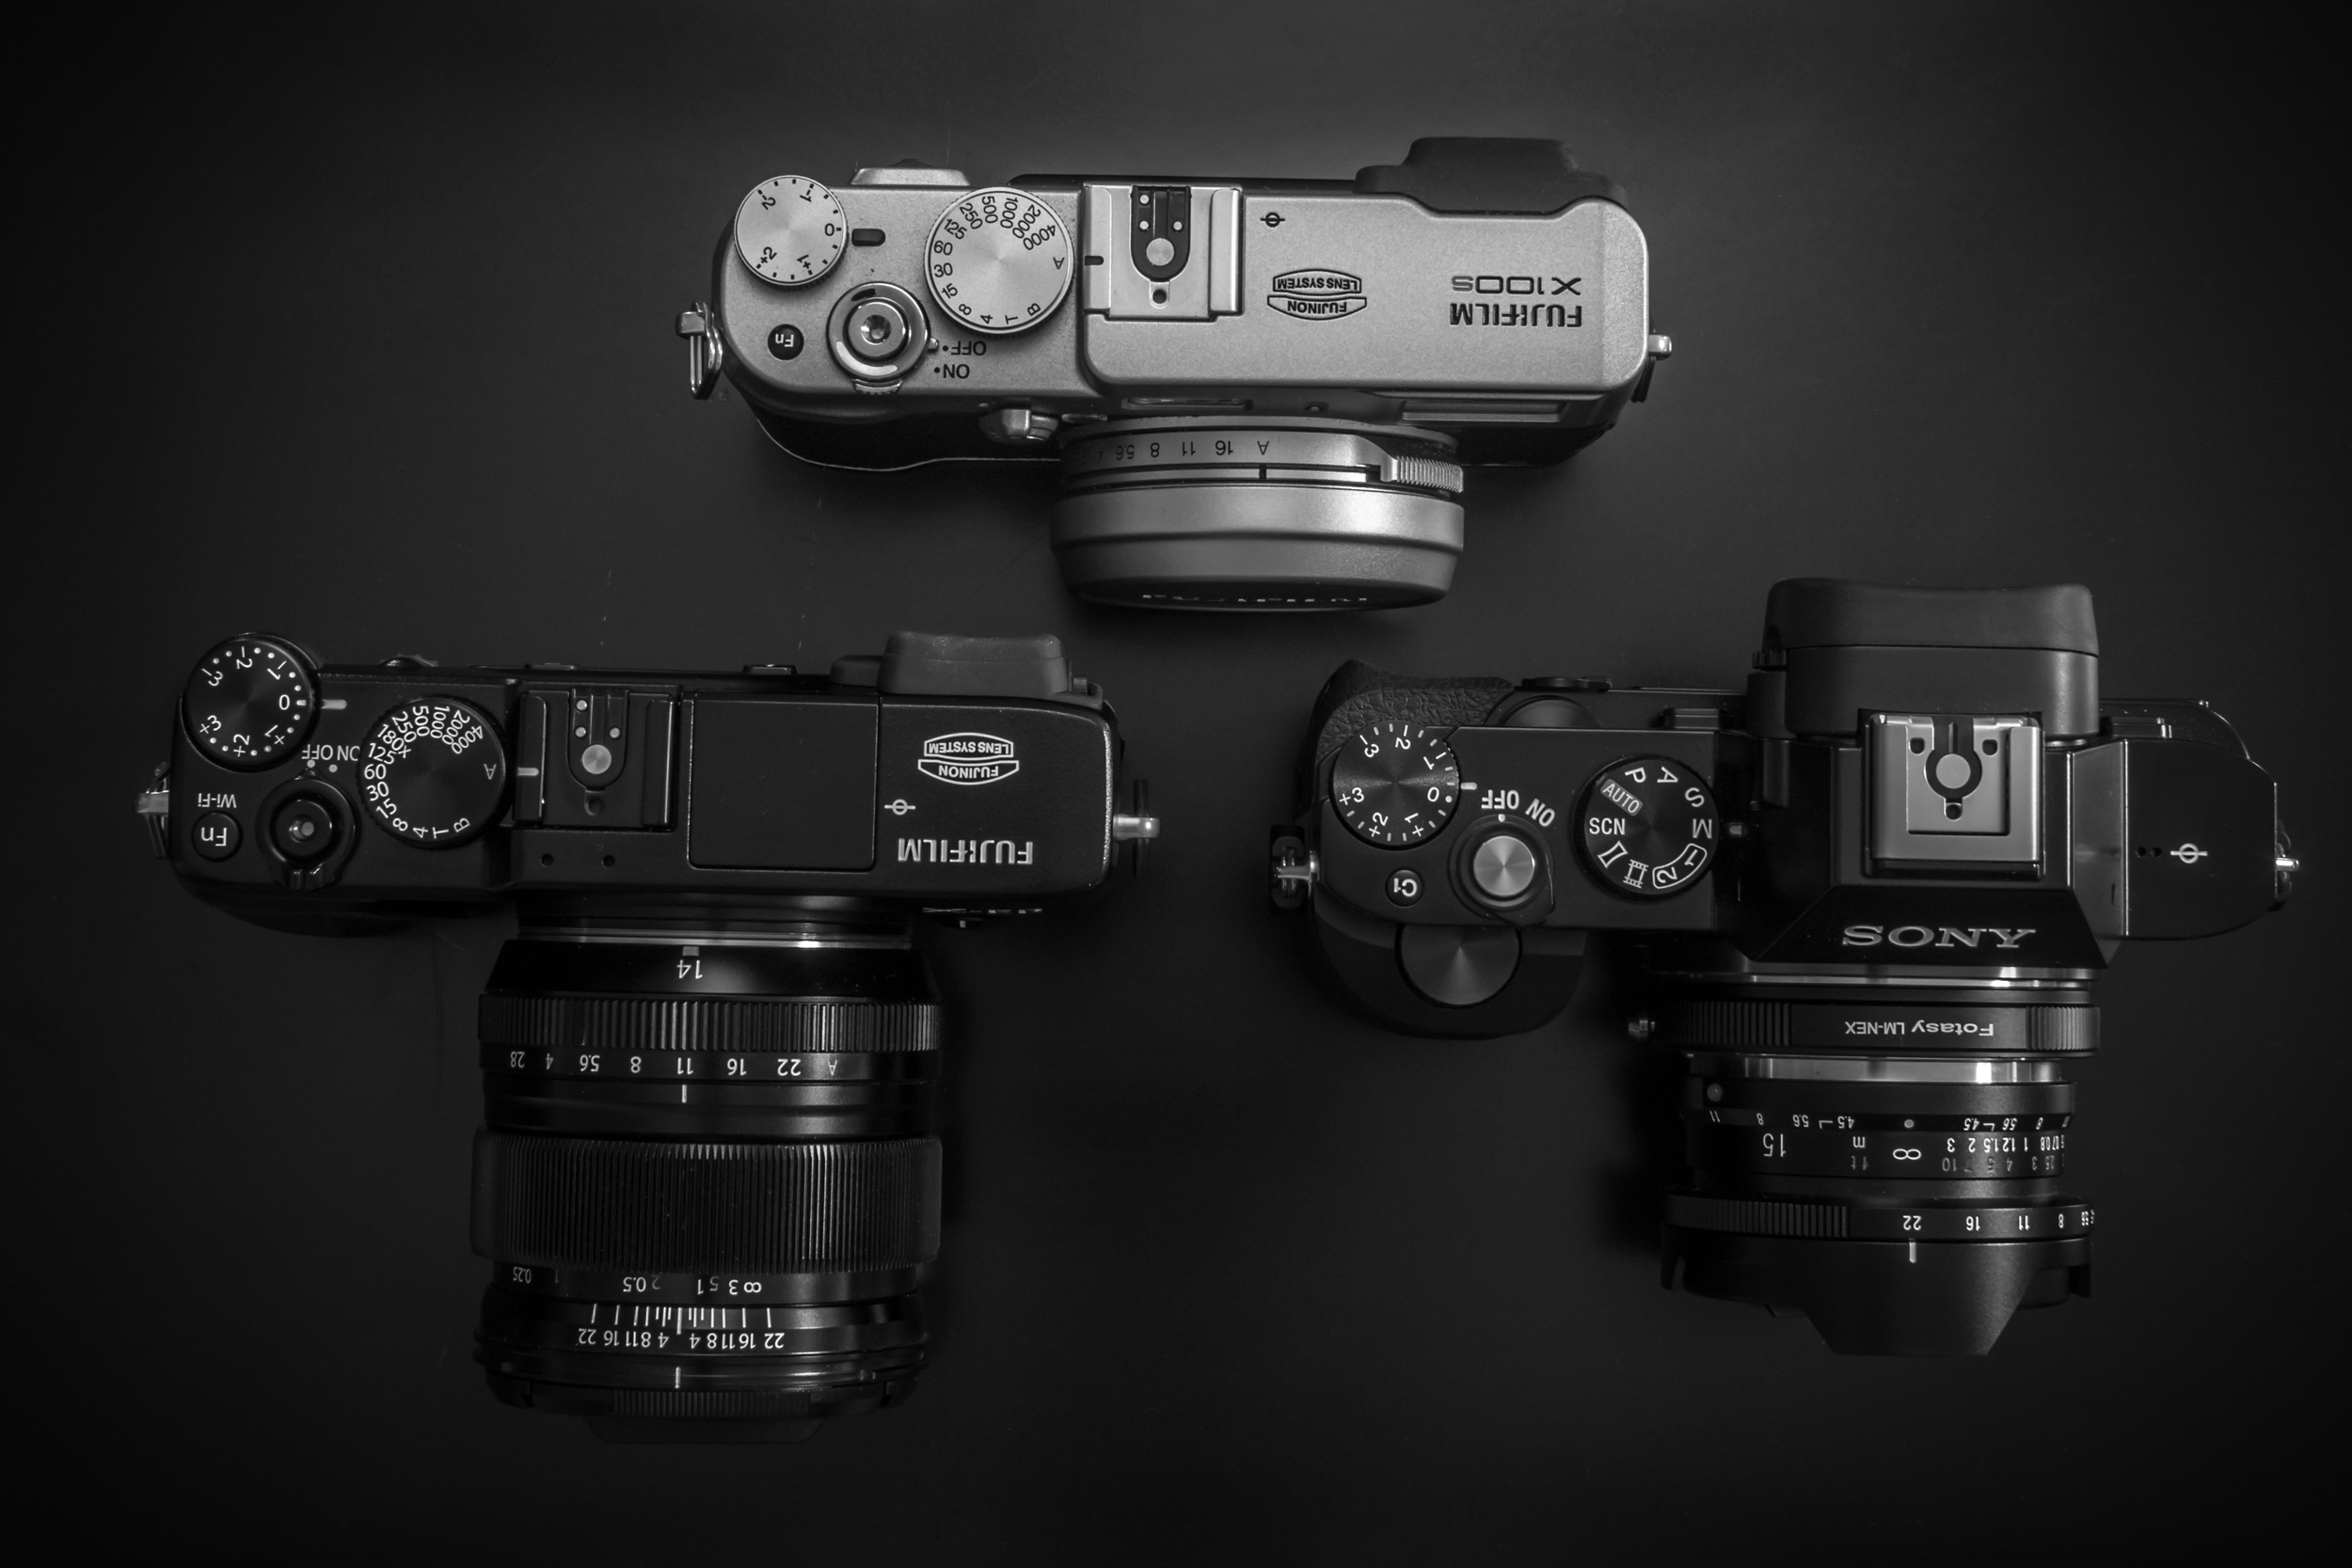 X-E2, x100s, Sony A7r size comparison (Click to enlarge)